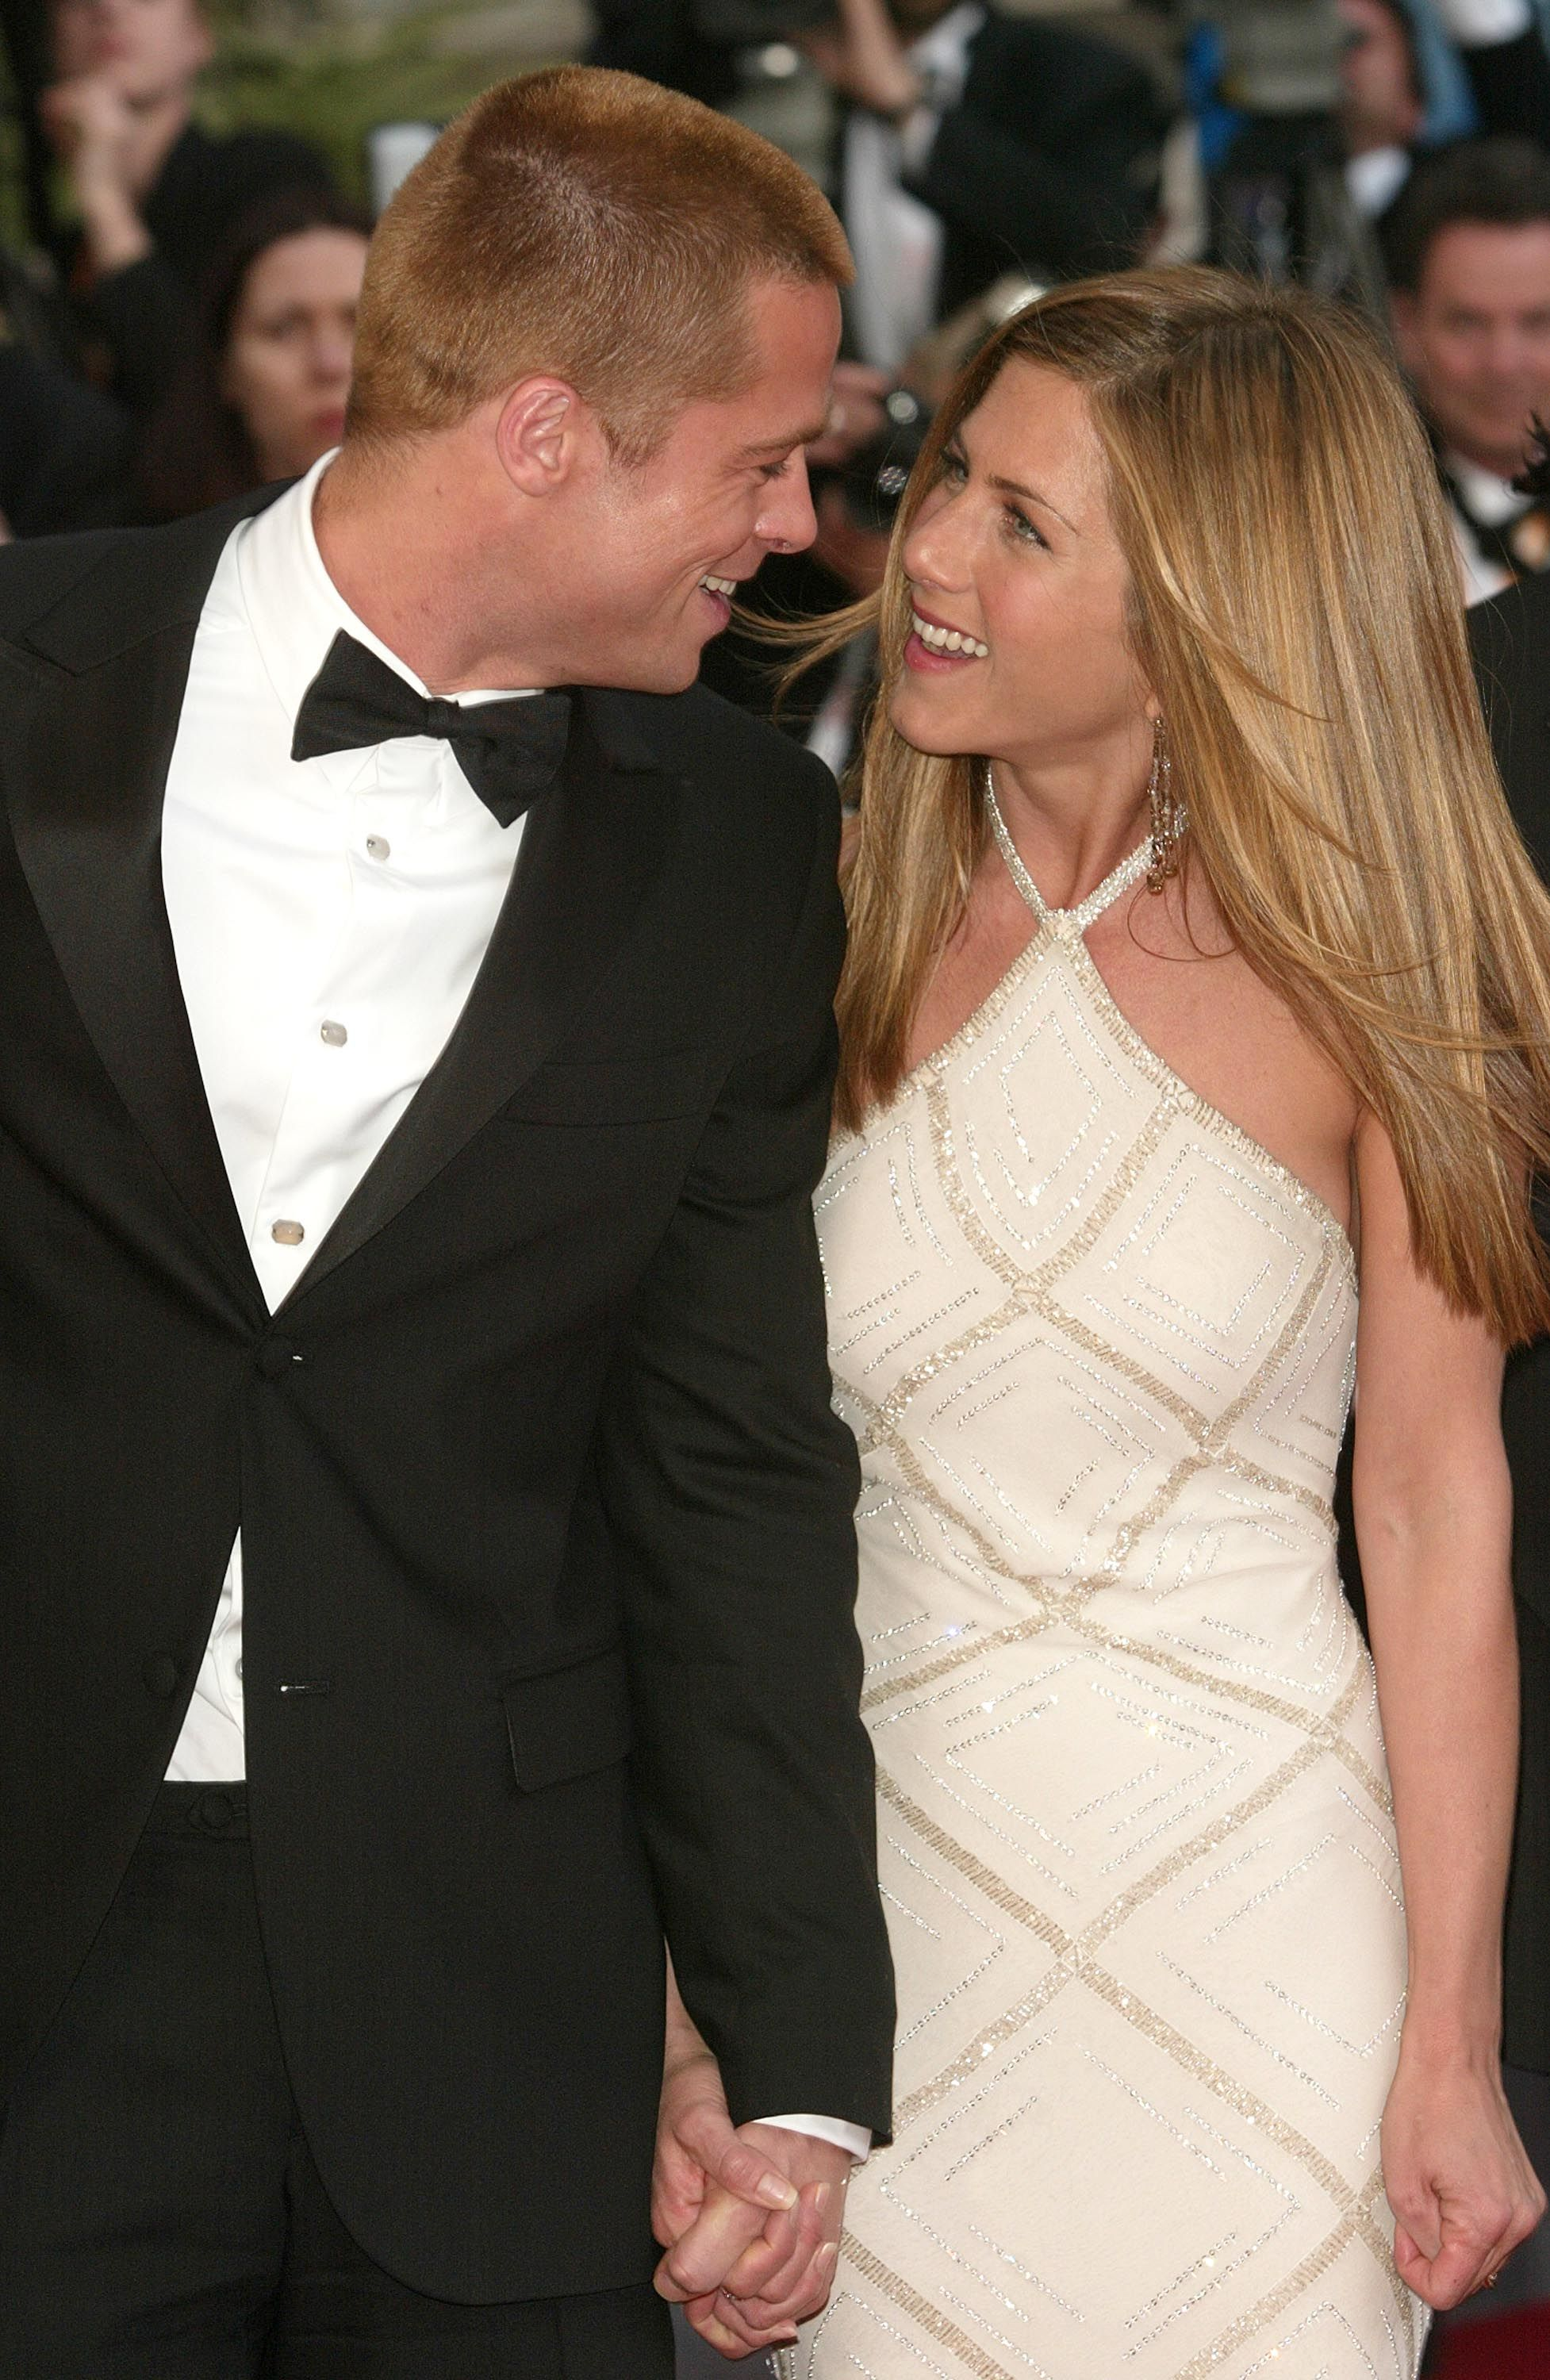 um-jennifer-aniston-and-brad-pitt-have-been-friends-for-three-years-now